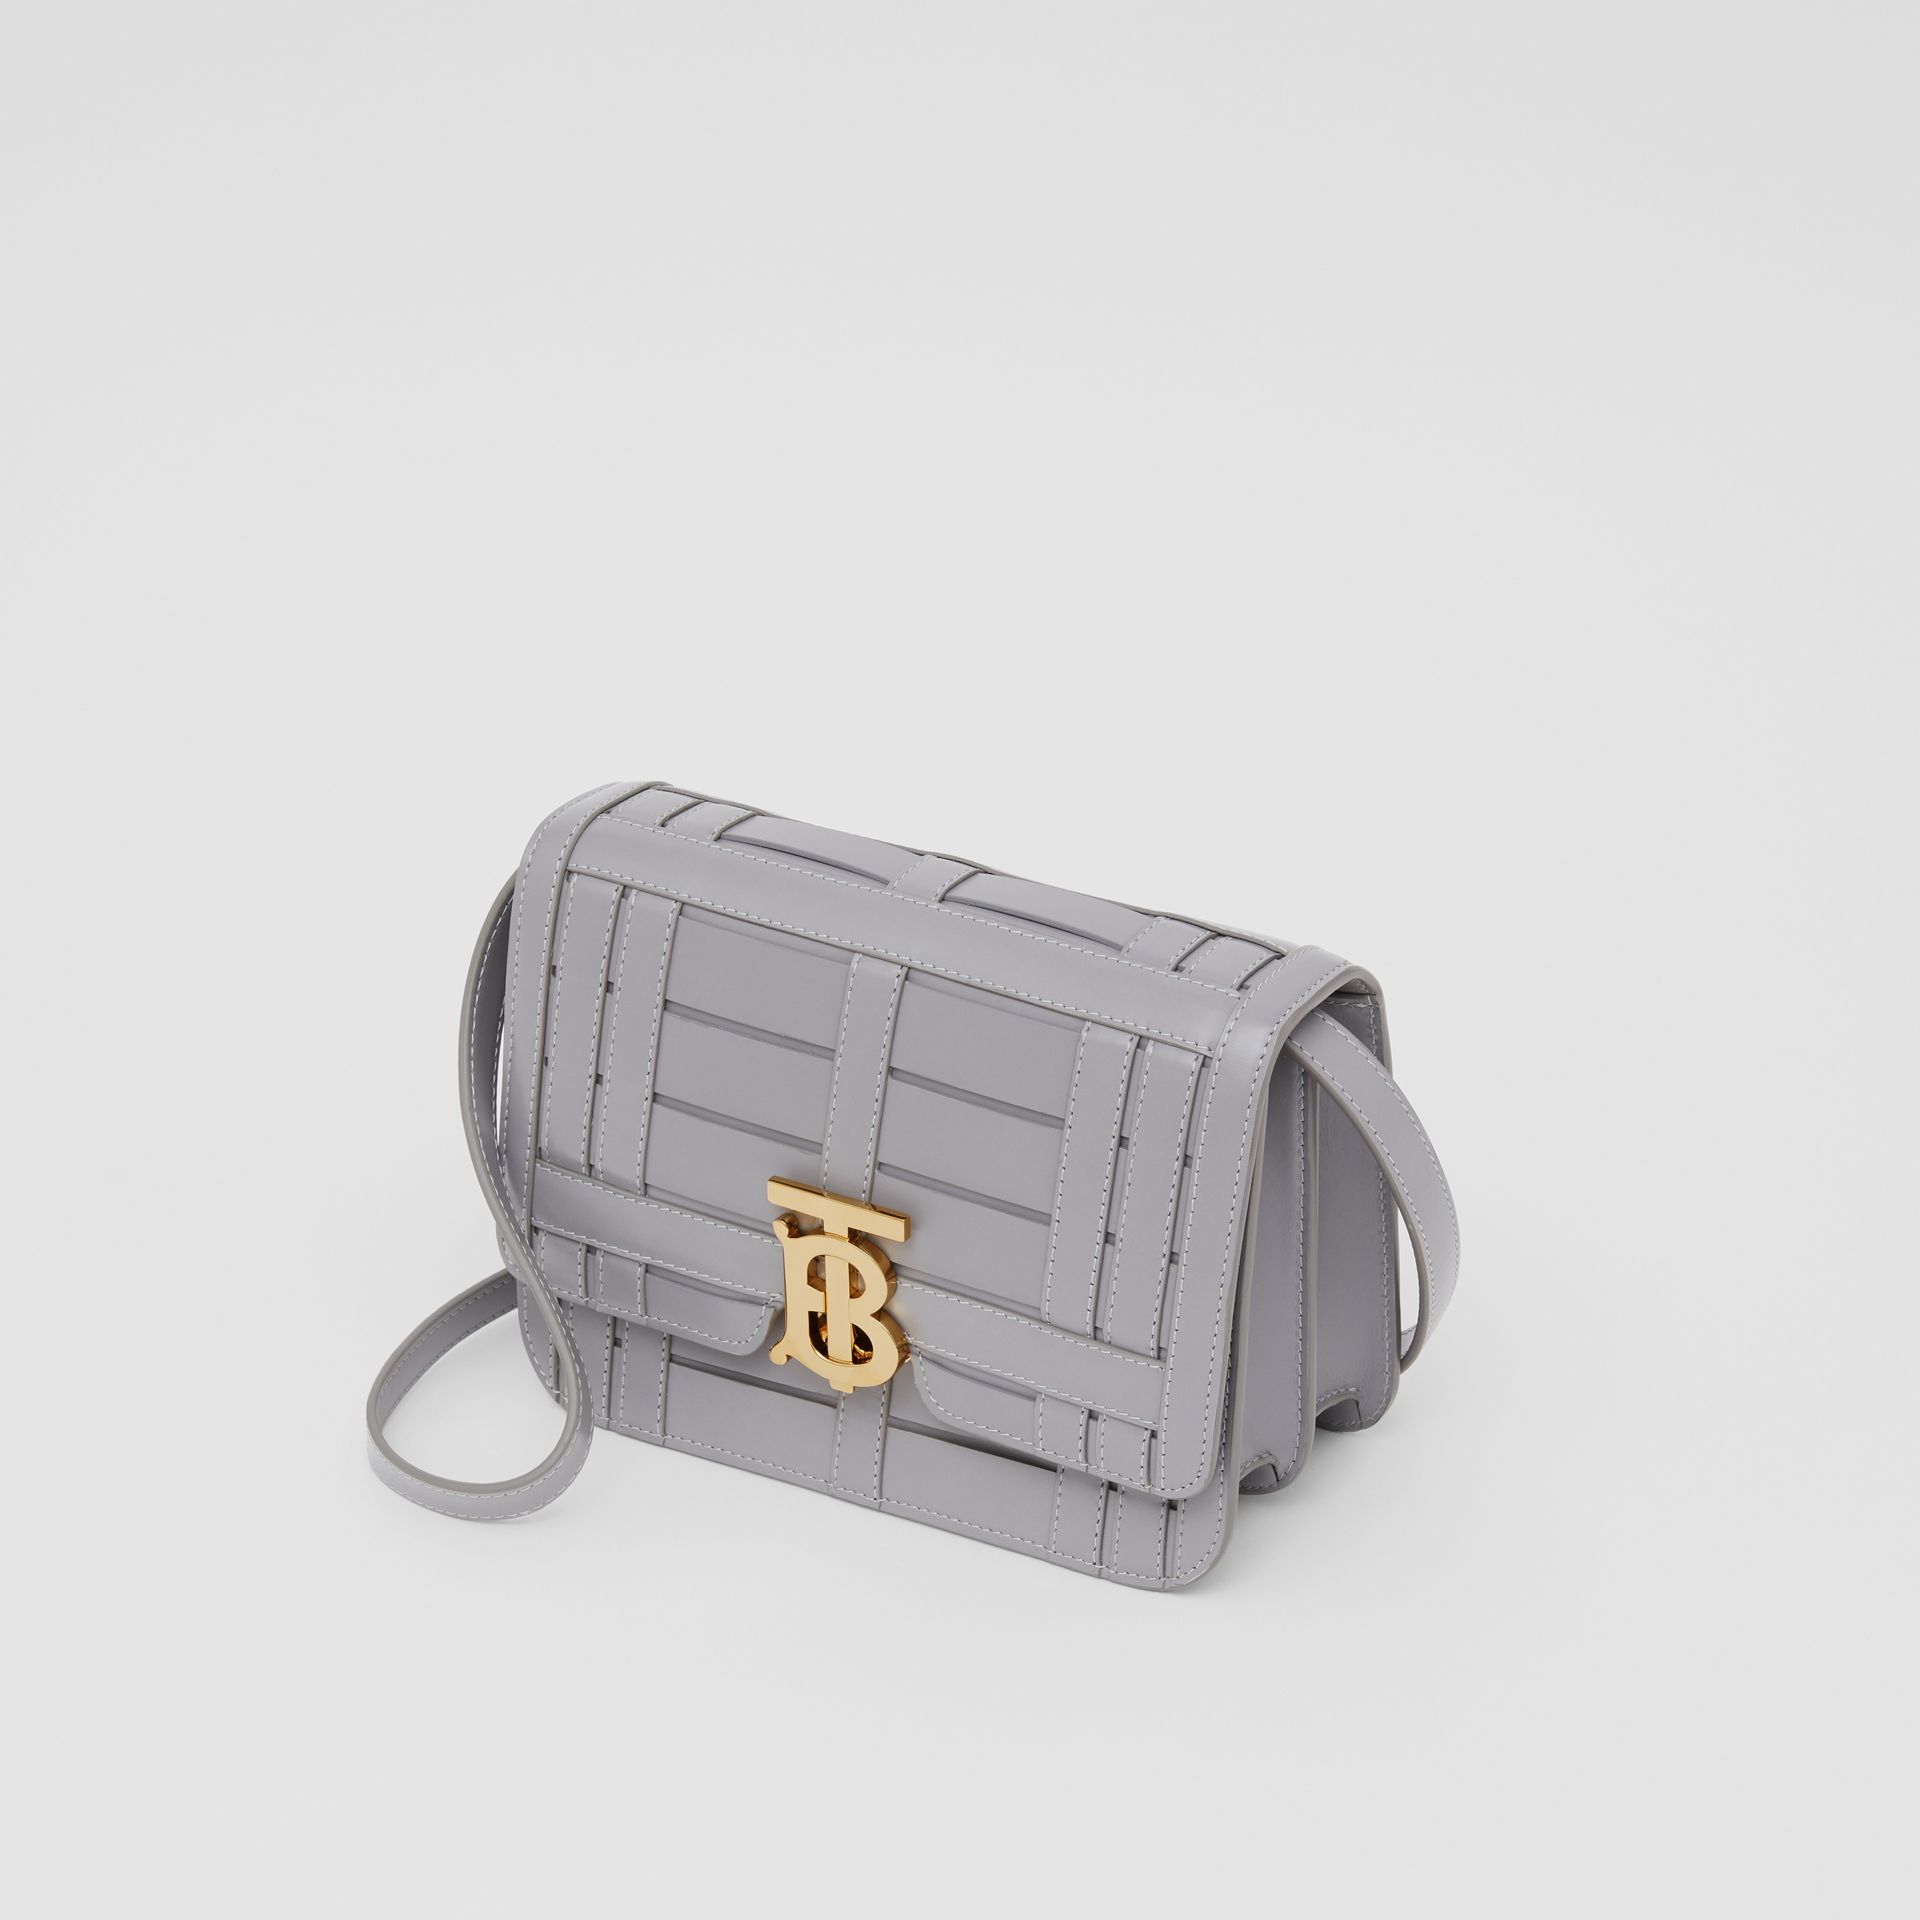 Small Woven Leather TB Bag in Cloud Grey - Women | Burberry United Kingdom - gallery image 3